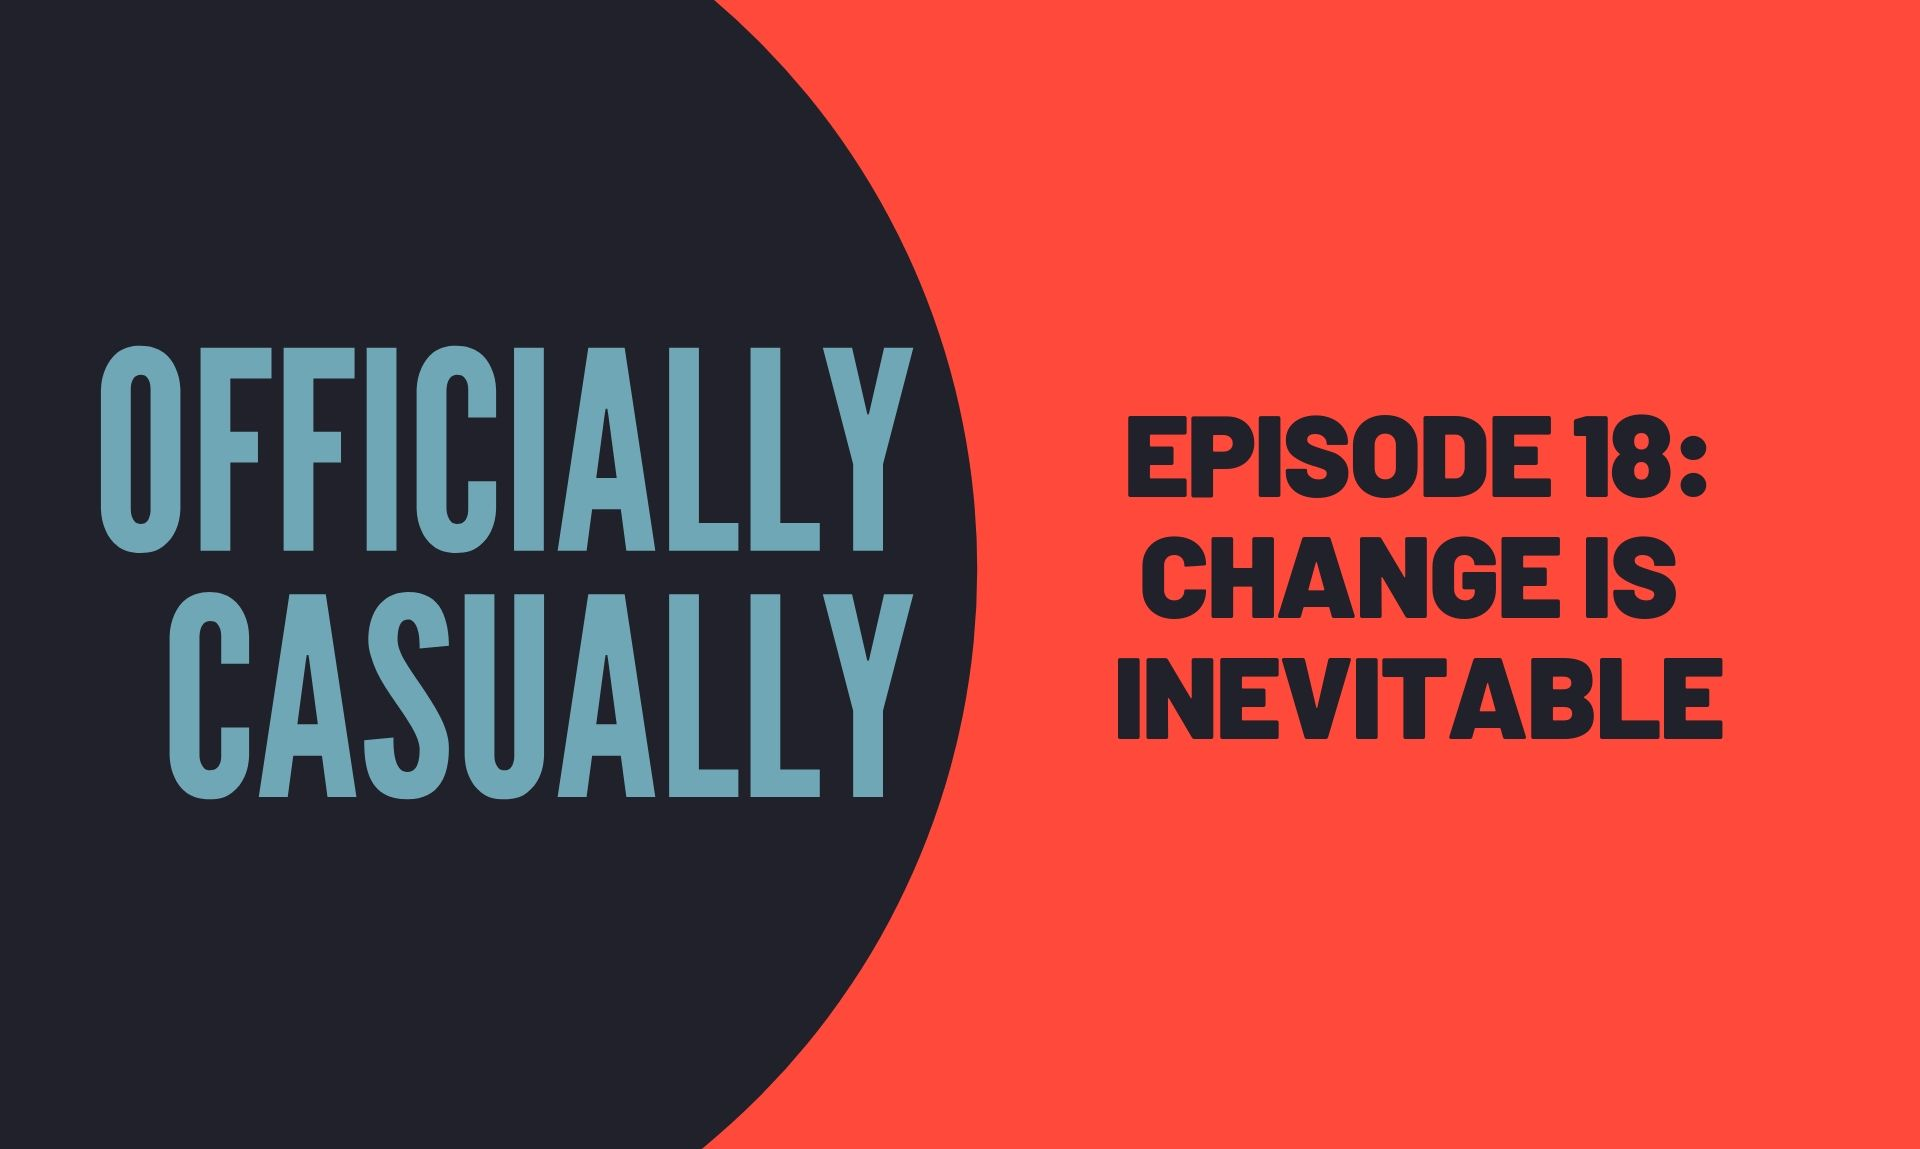 CHANGE IS INEVITABLE - EPISODE #18